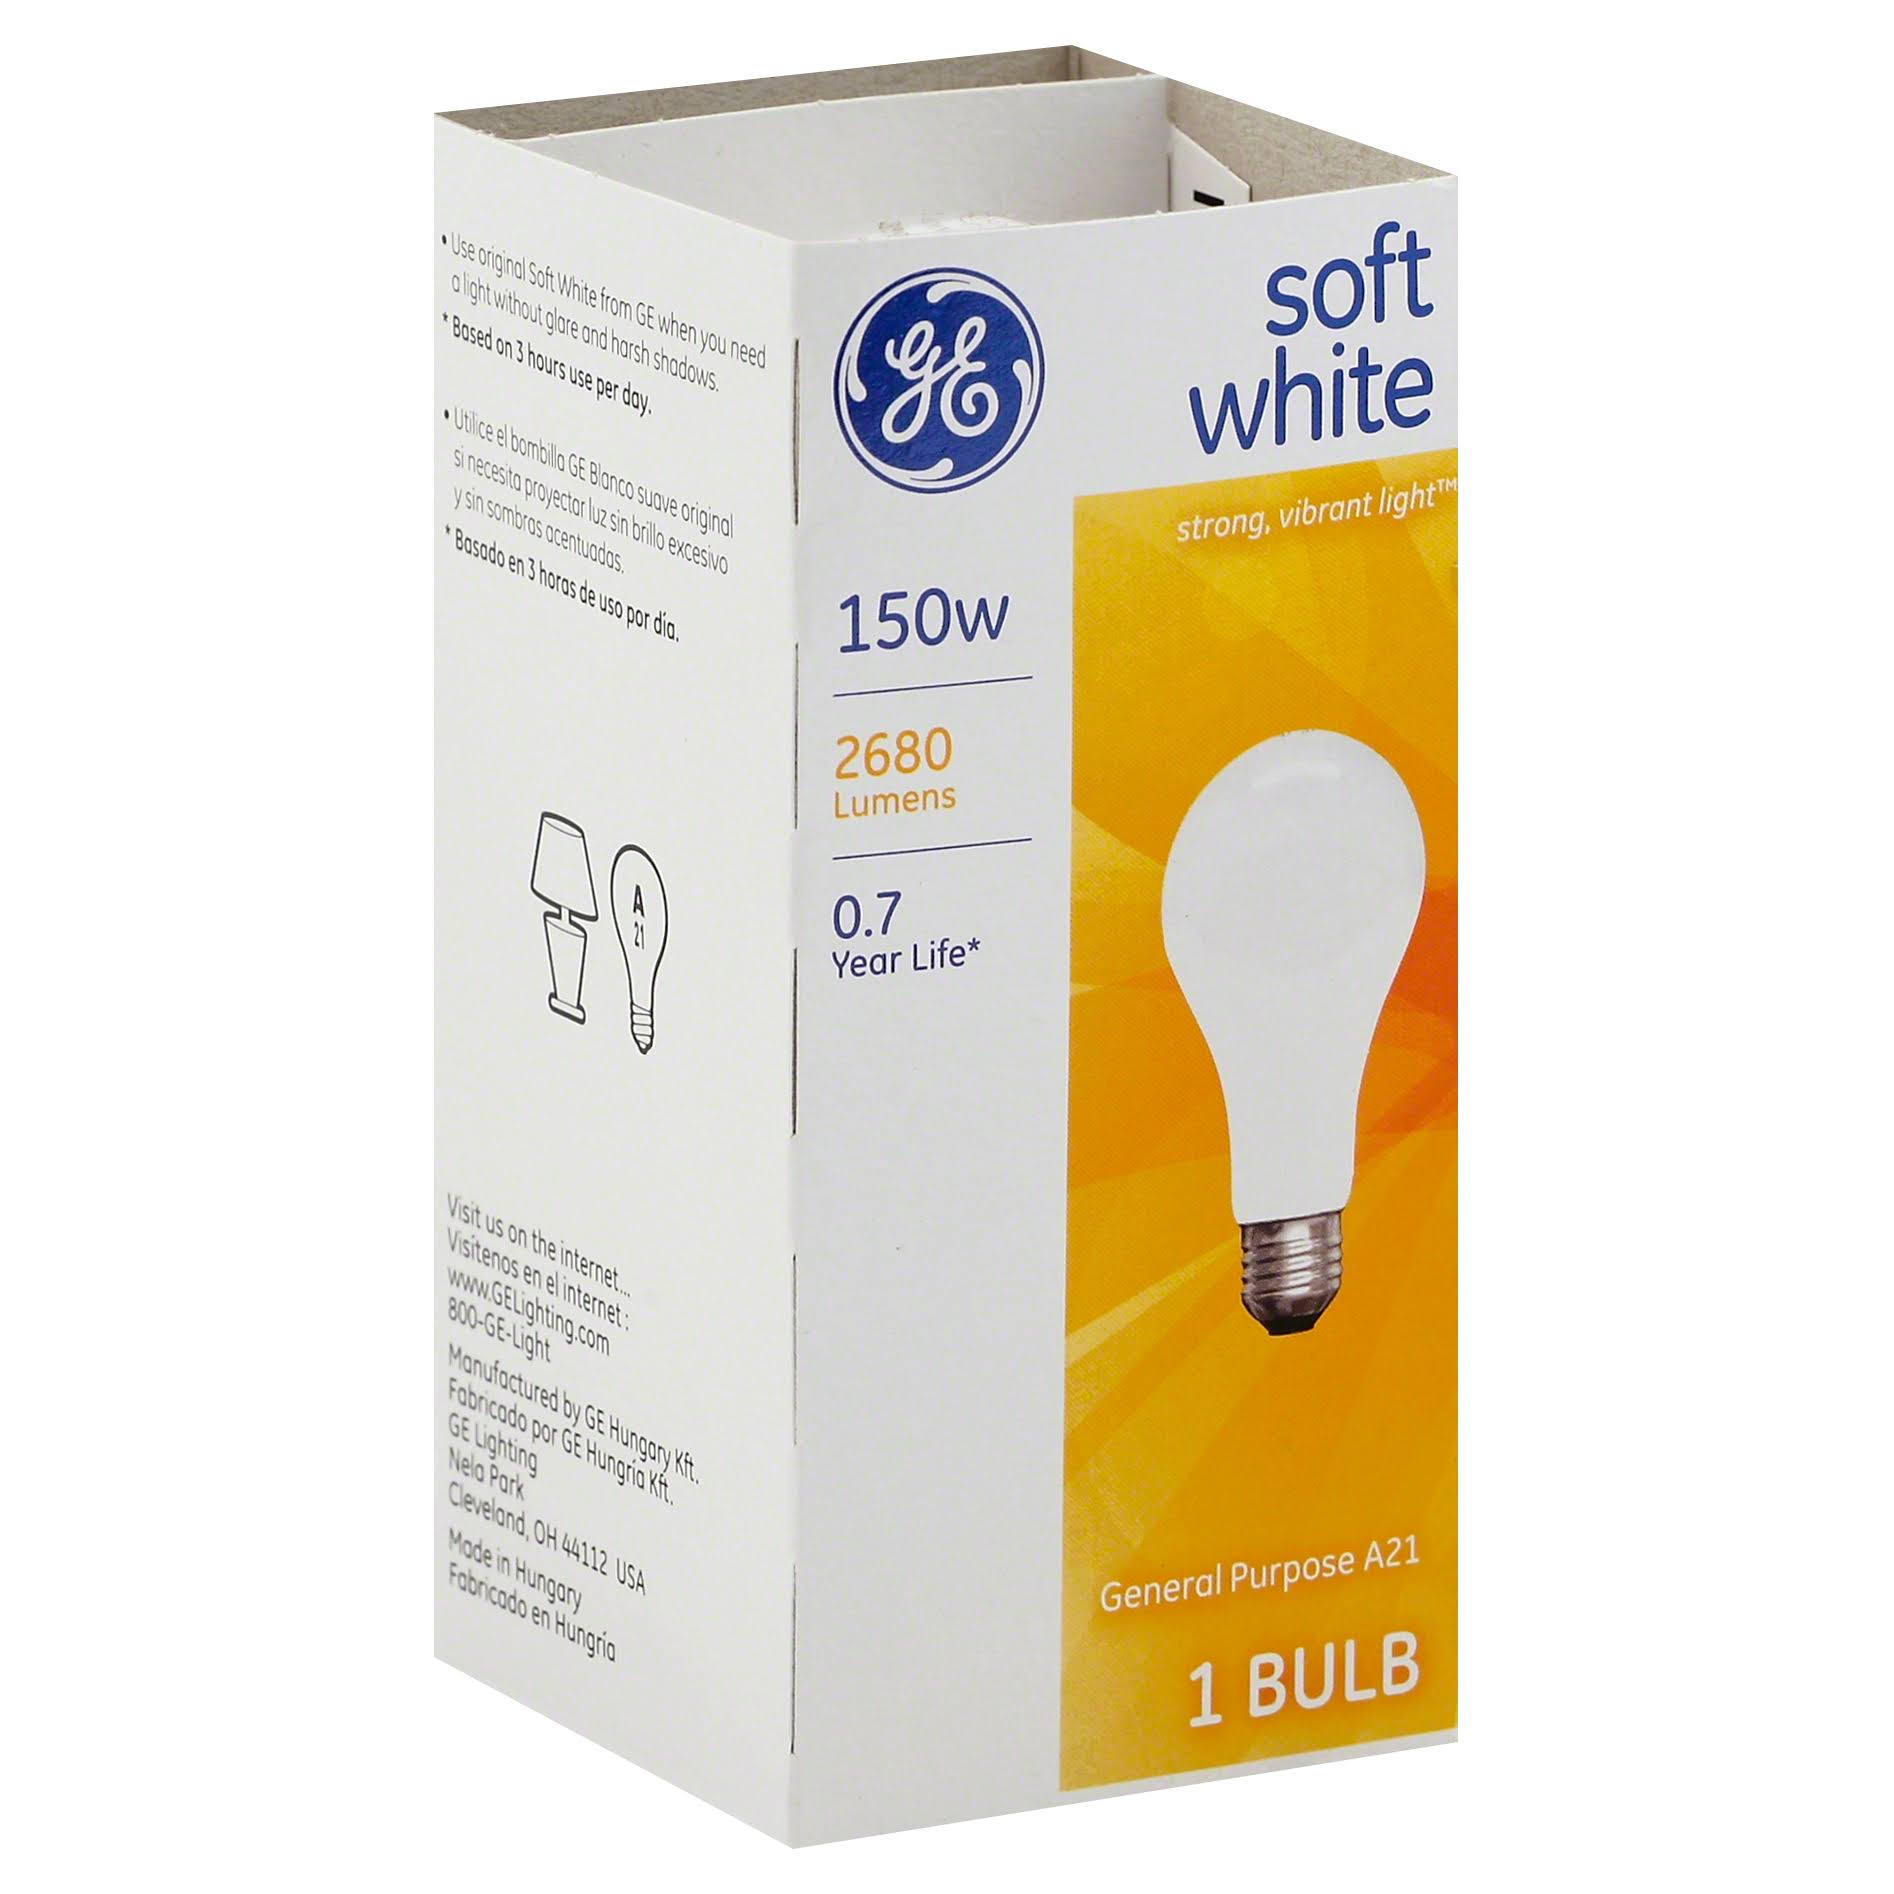 GE Incandescent Light Bulb - 150W, Soft White